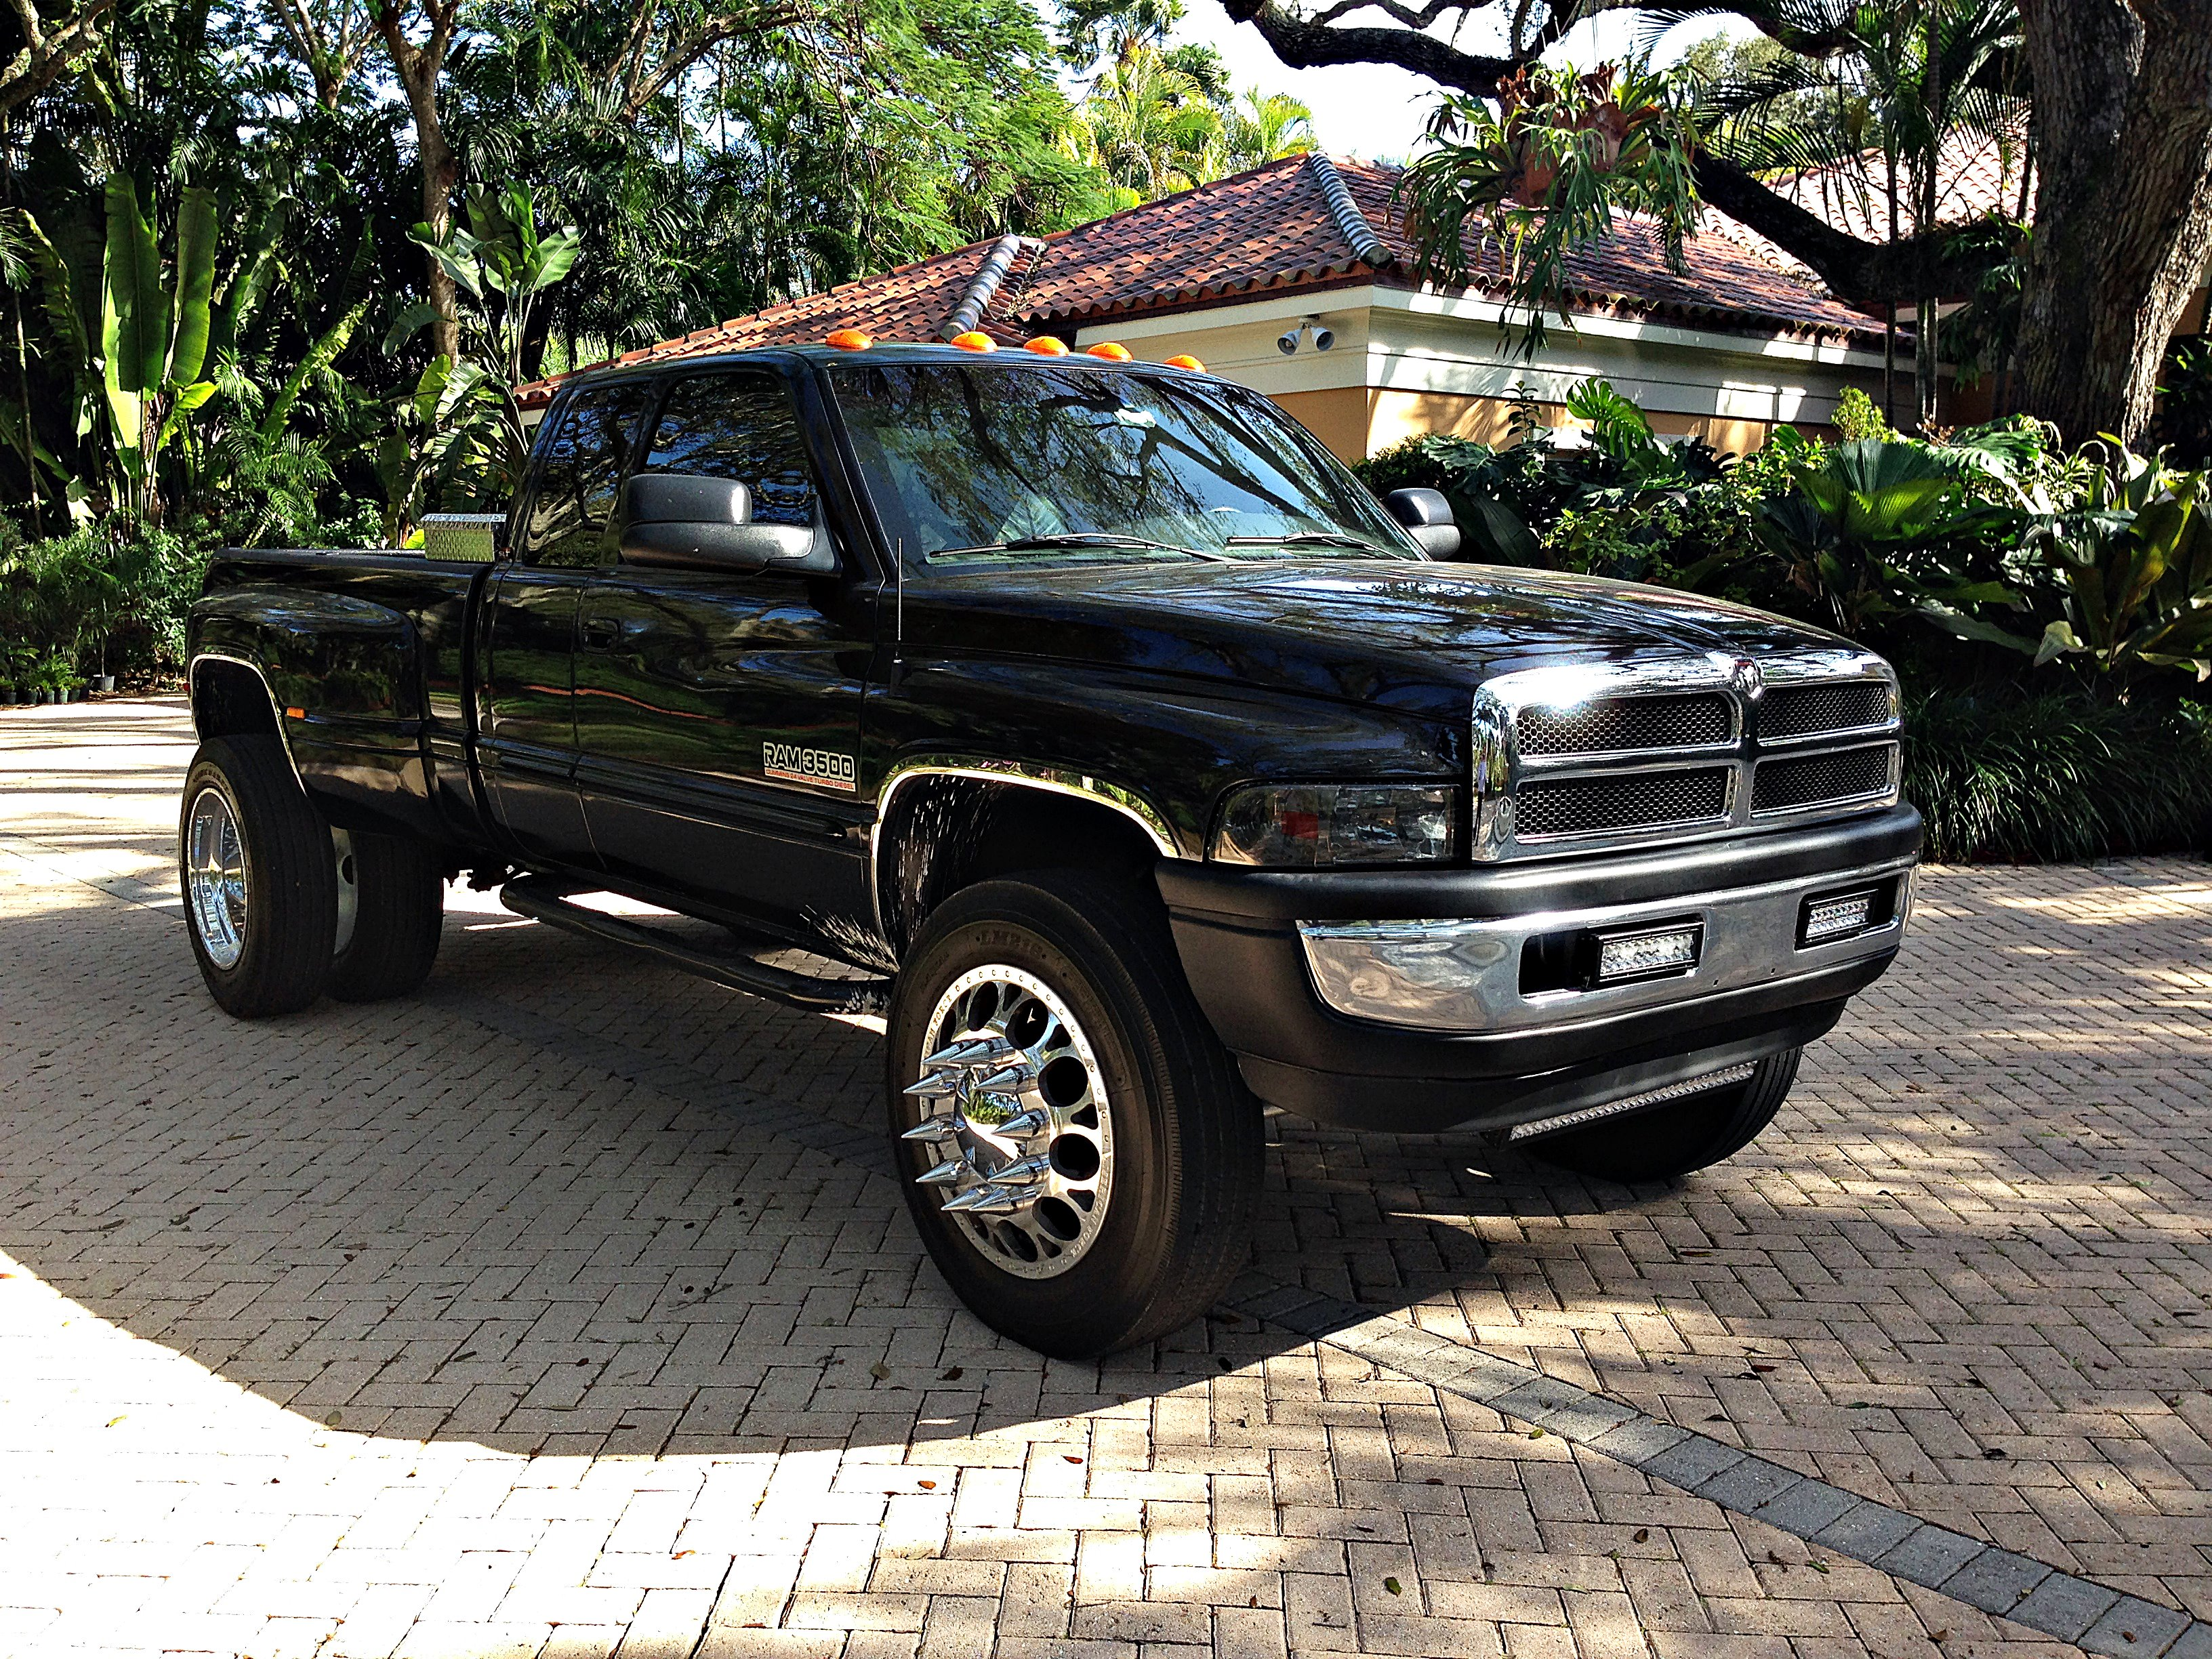 conquryourfear 2002 dodge ram 3500 quad cablaramie pickup 4d 8 ft drw s photo gallery at cardomain cardomain